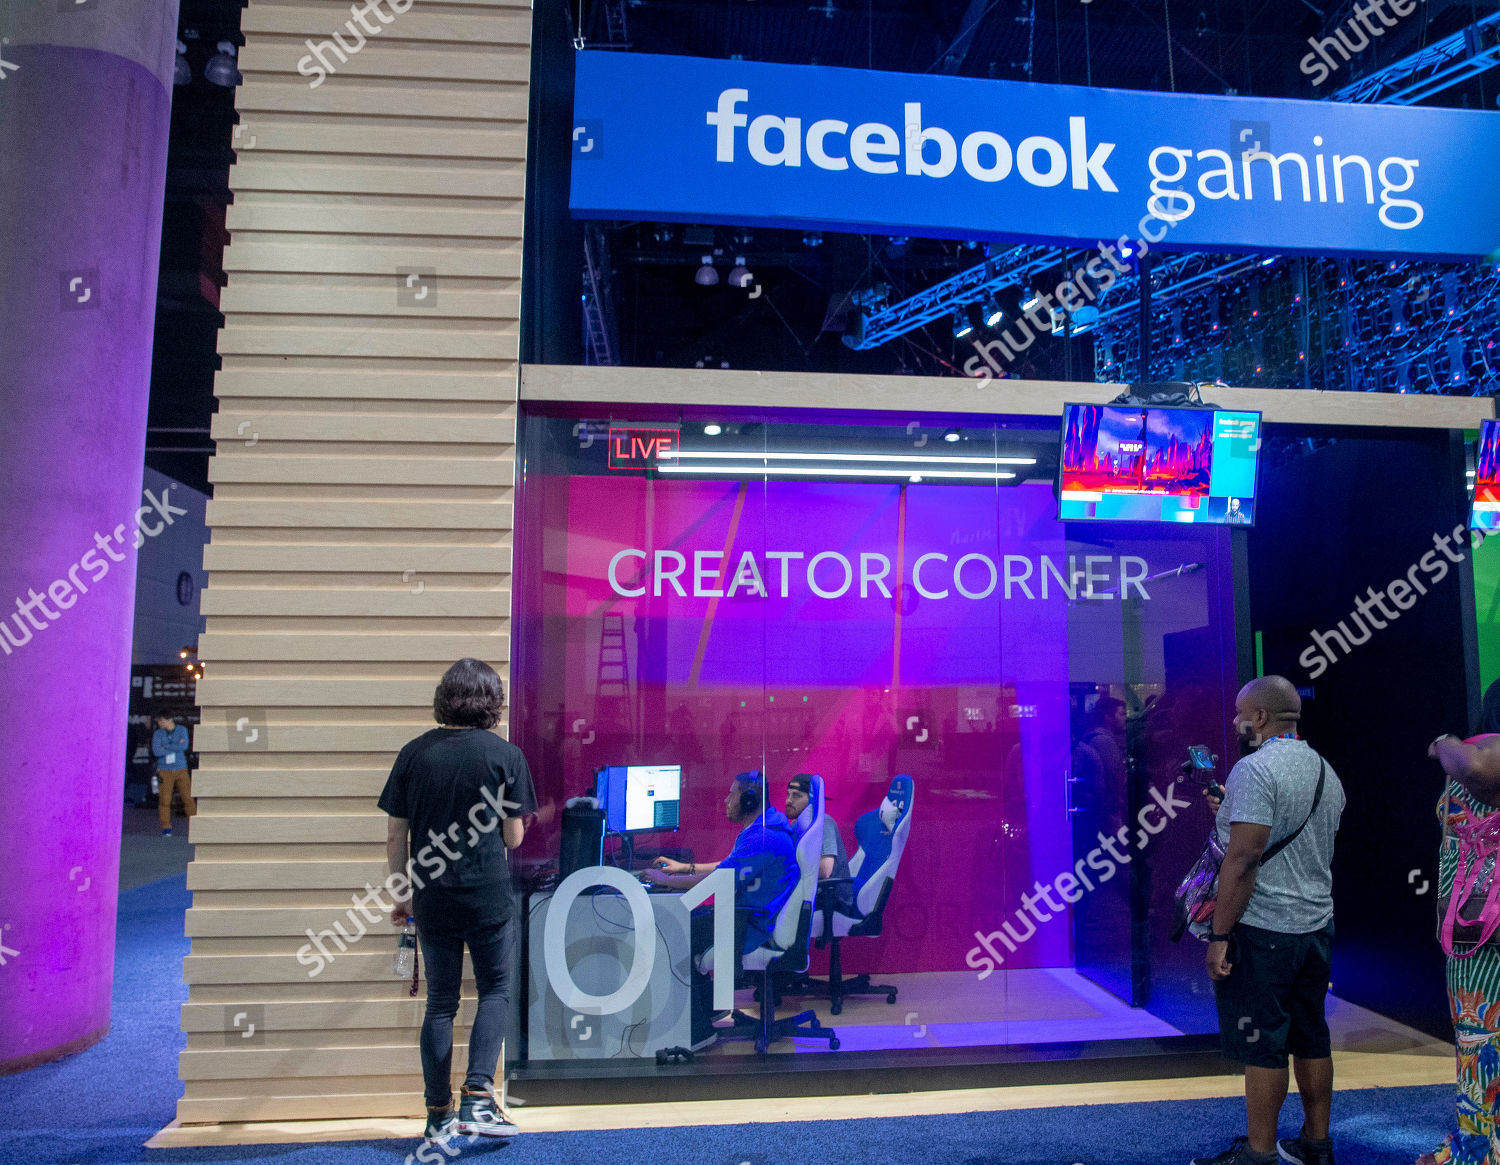 Attendees create games Facebook gaming area during Editorial